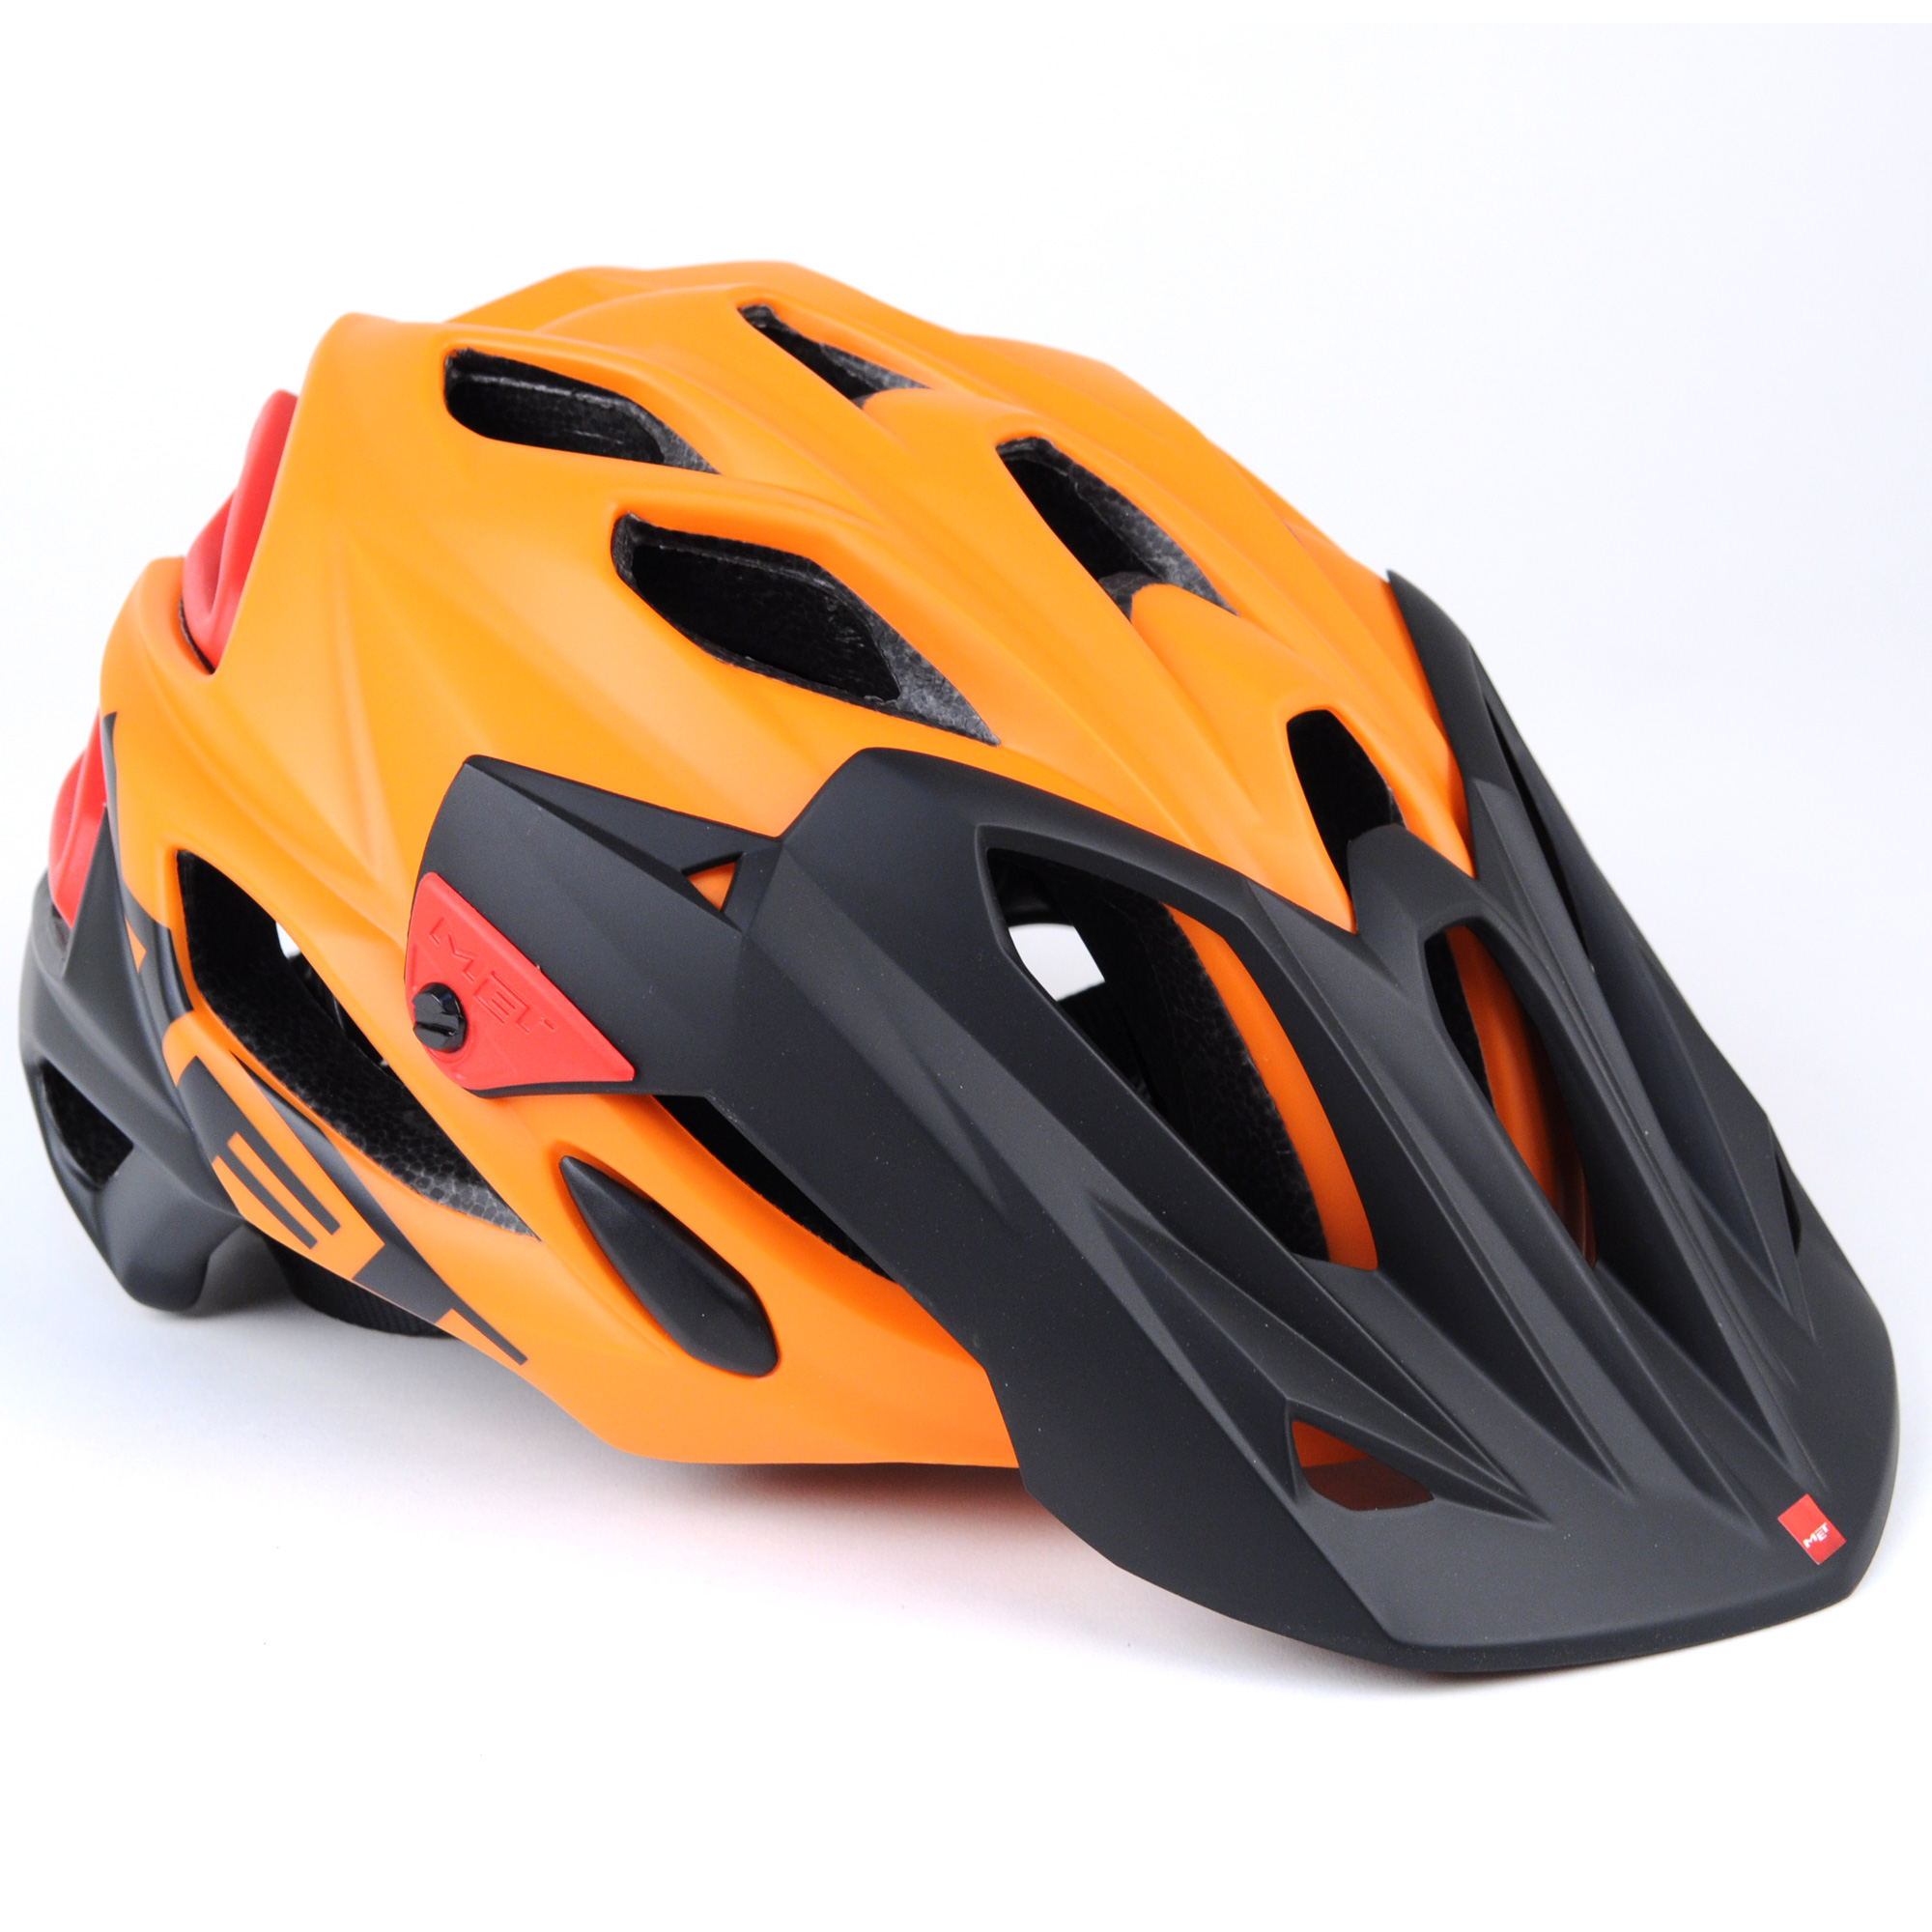 Parabellum - The Parabellum Helmet is lightweight and designed to offer coverage extending down the back of the skull. An aluminium ratchet system allows riders to adjust their built- in visor and those that love to share their adventures can take advantage of the removable camera mount.